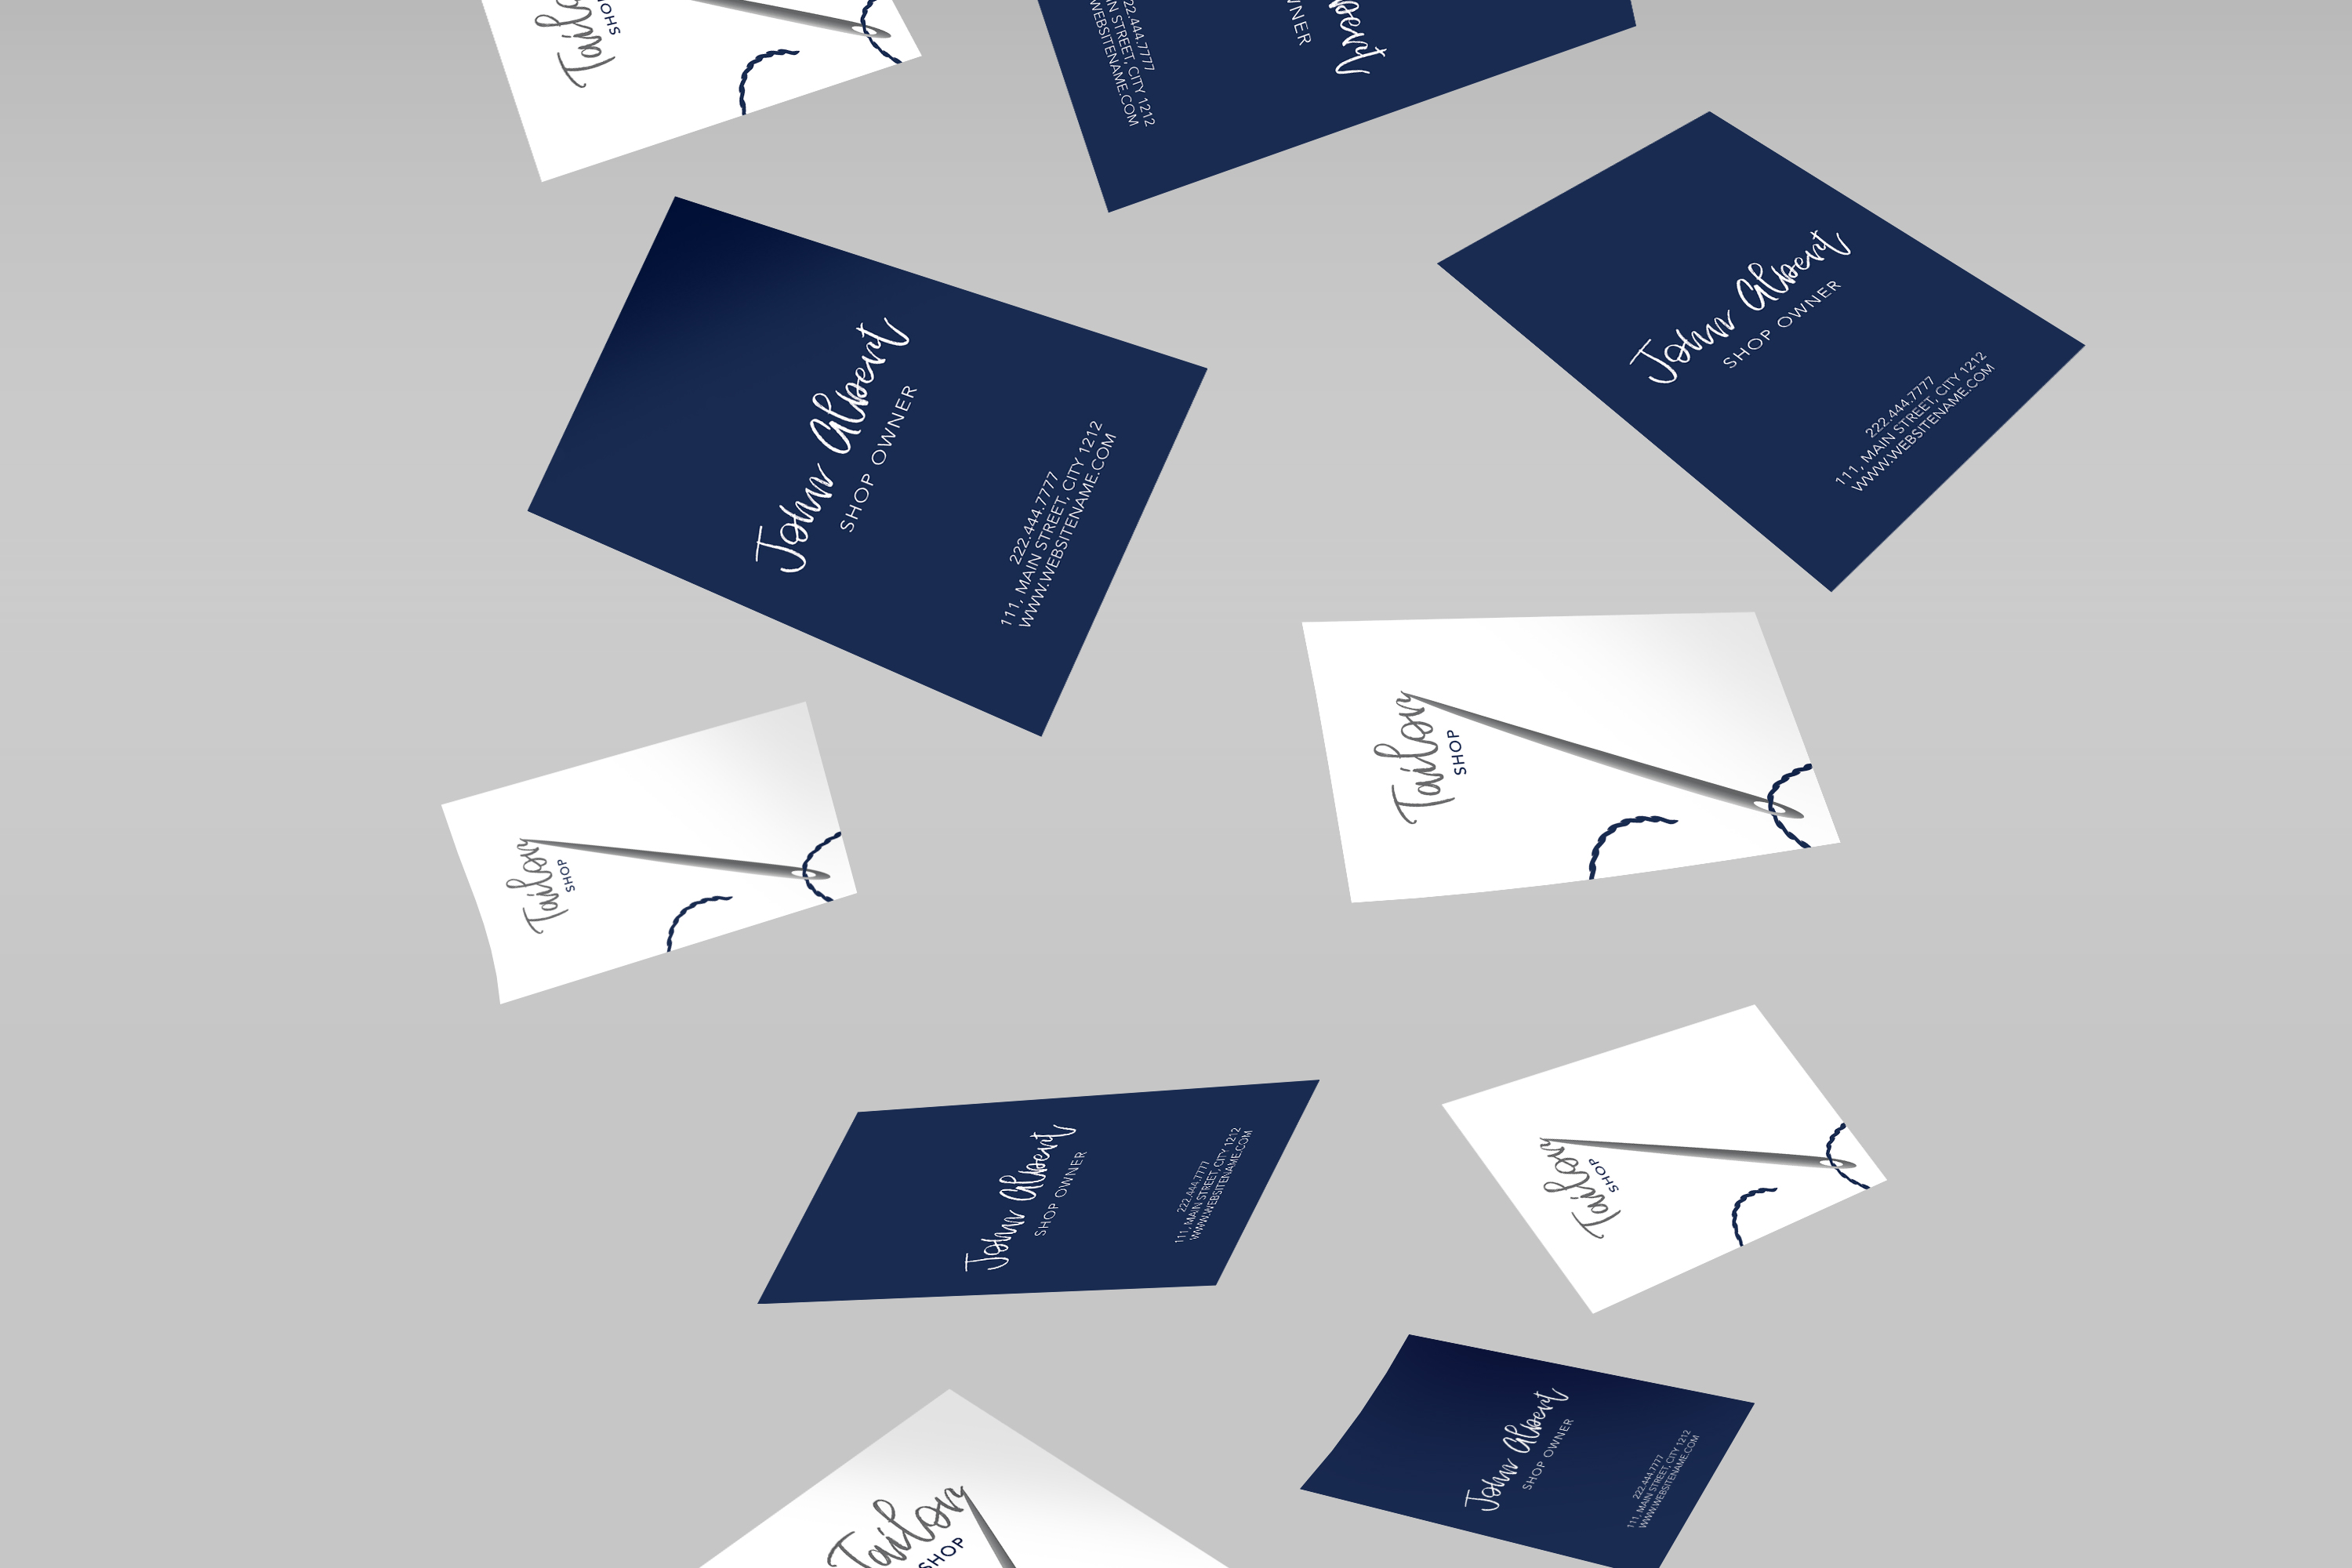 Tailor shop creative business card example image 2